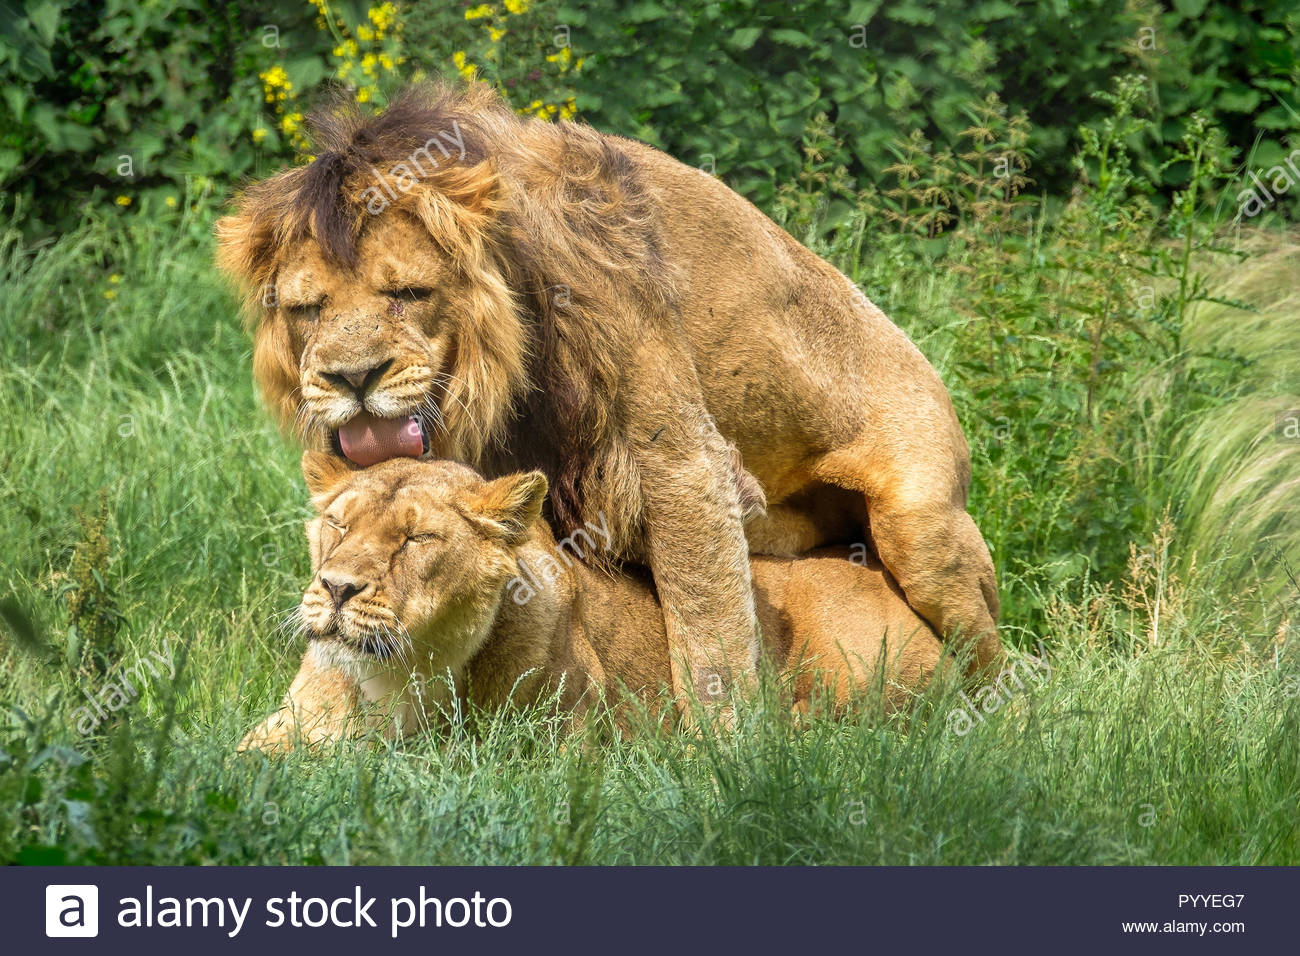 Mating Asiatic Lions - Stock Image